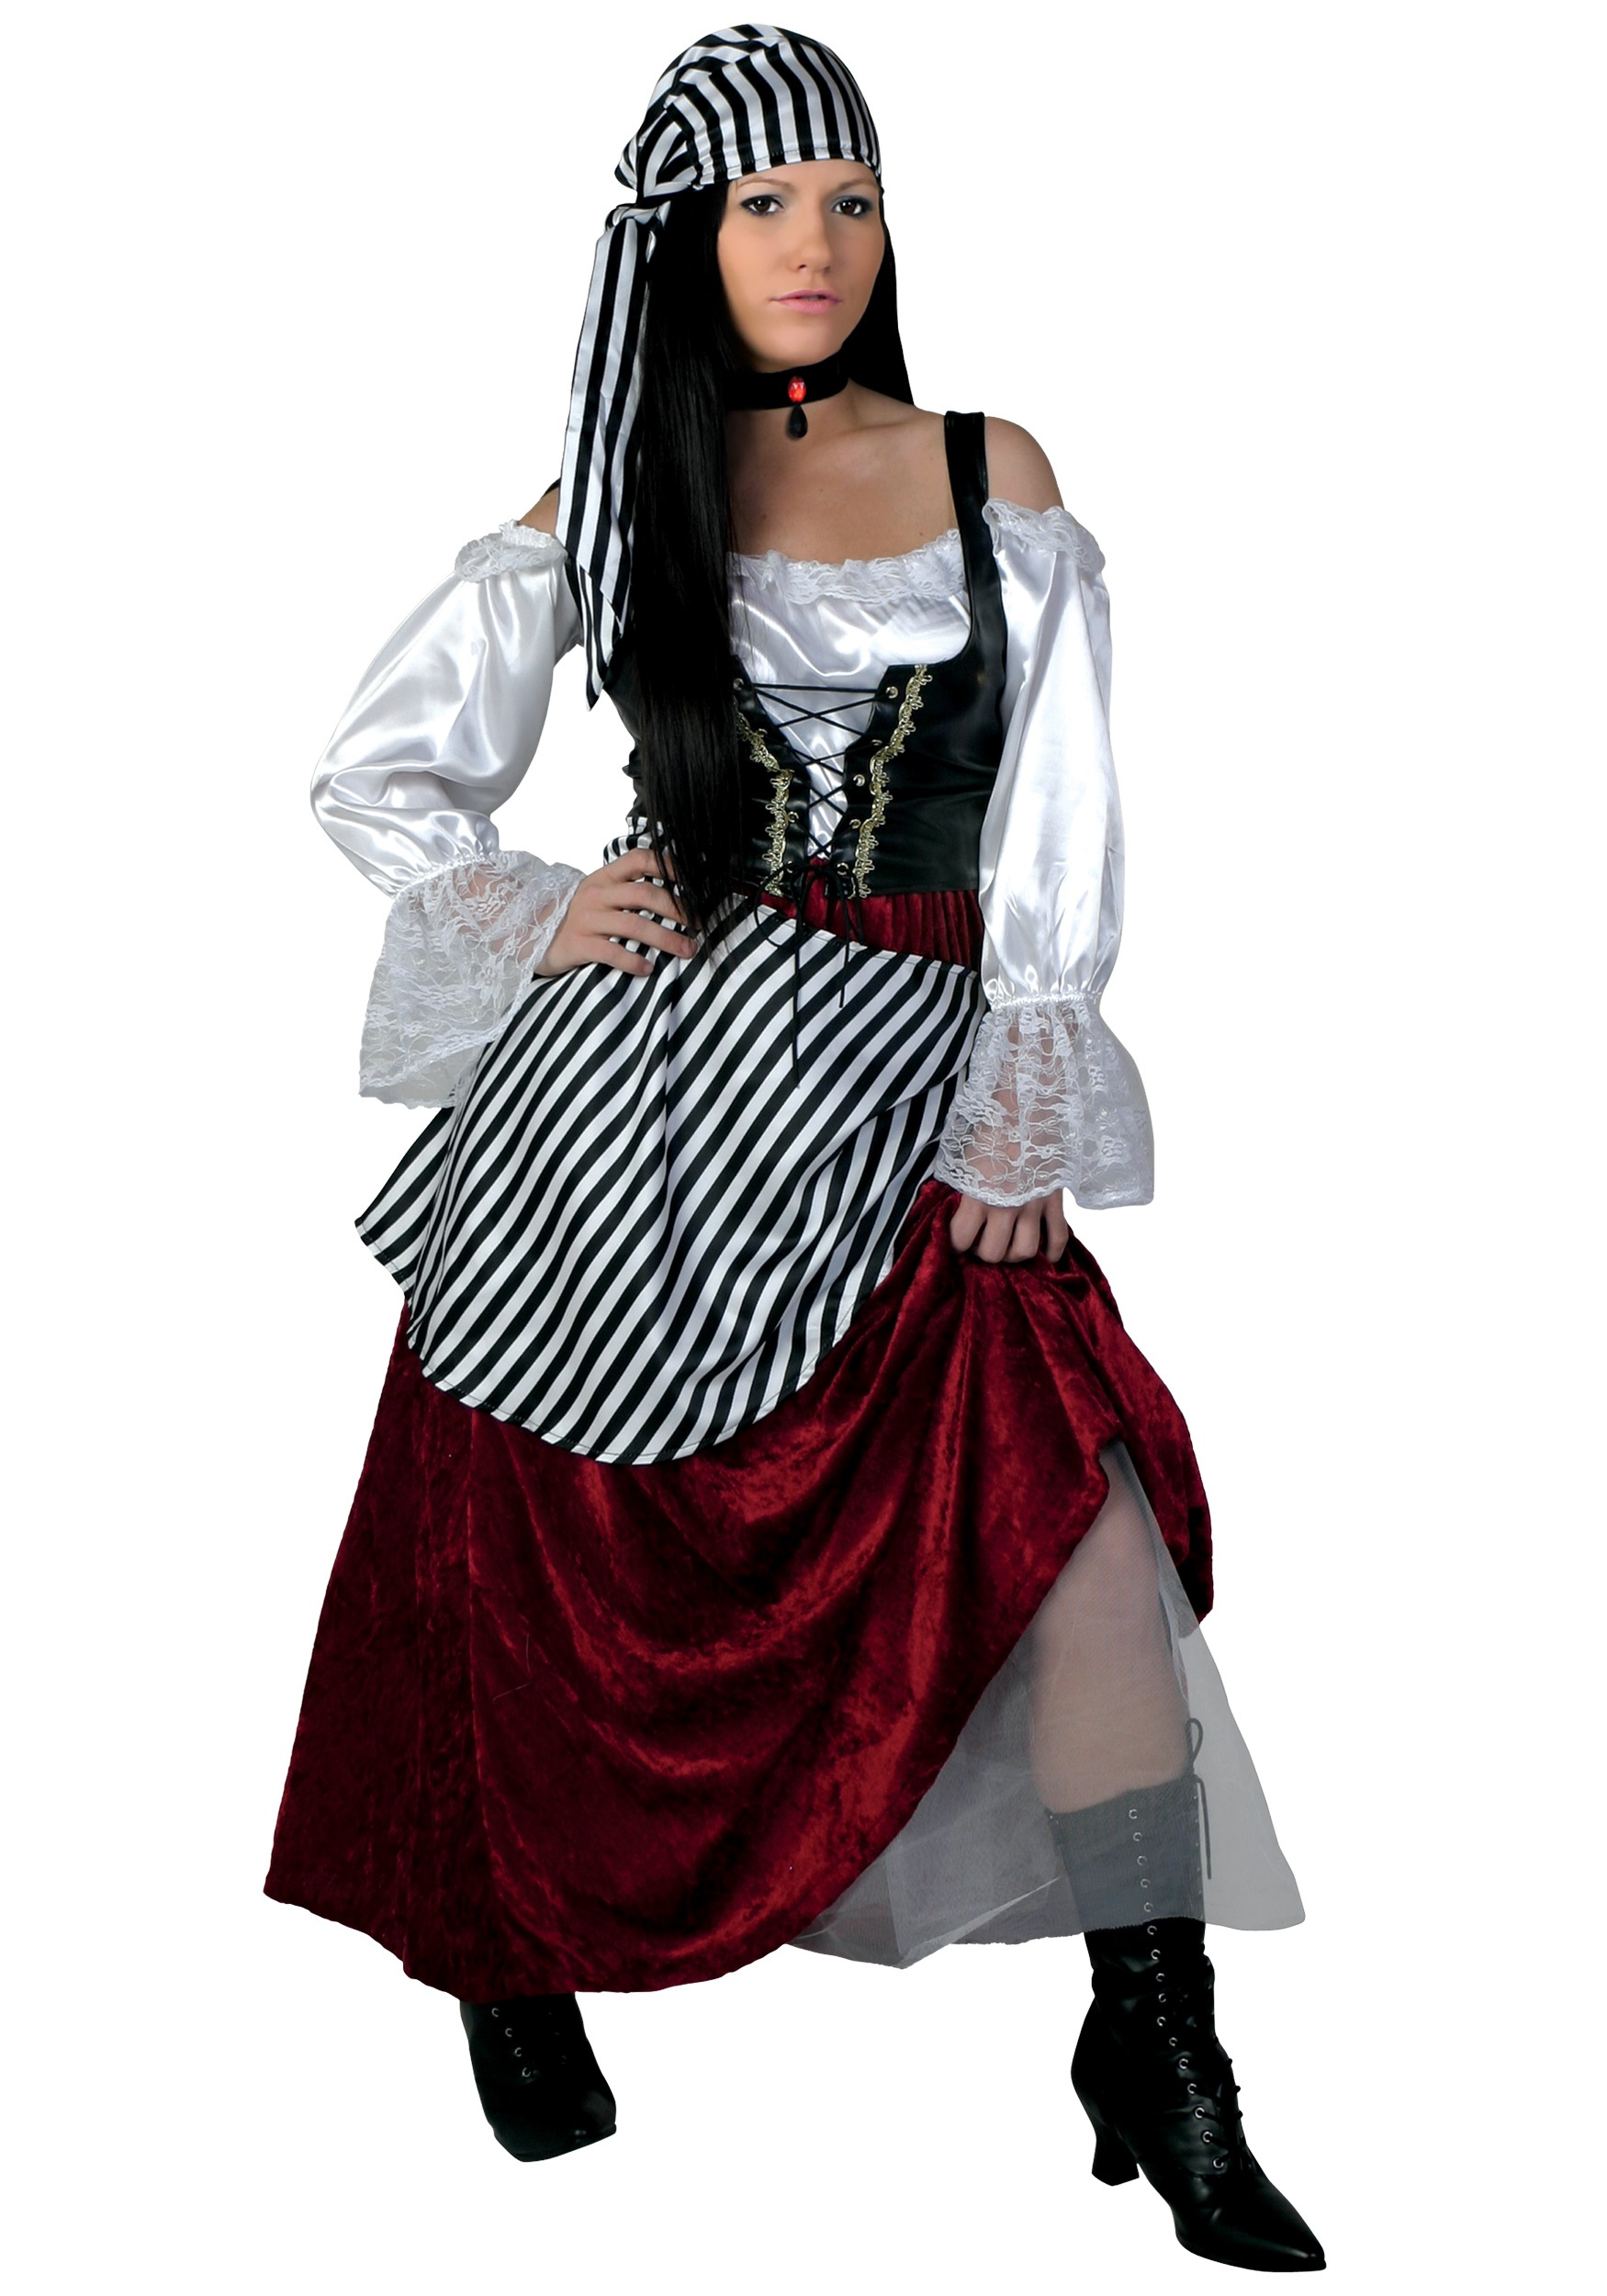 Frisky Pirate Wench Costume  sc 1 st  Halloween Costume & Deluxe Pirate Wench Costume - Halloween Pirate Costumes for Women